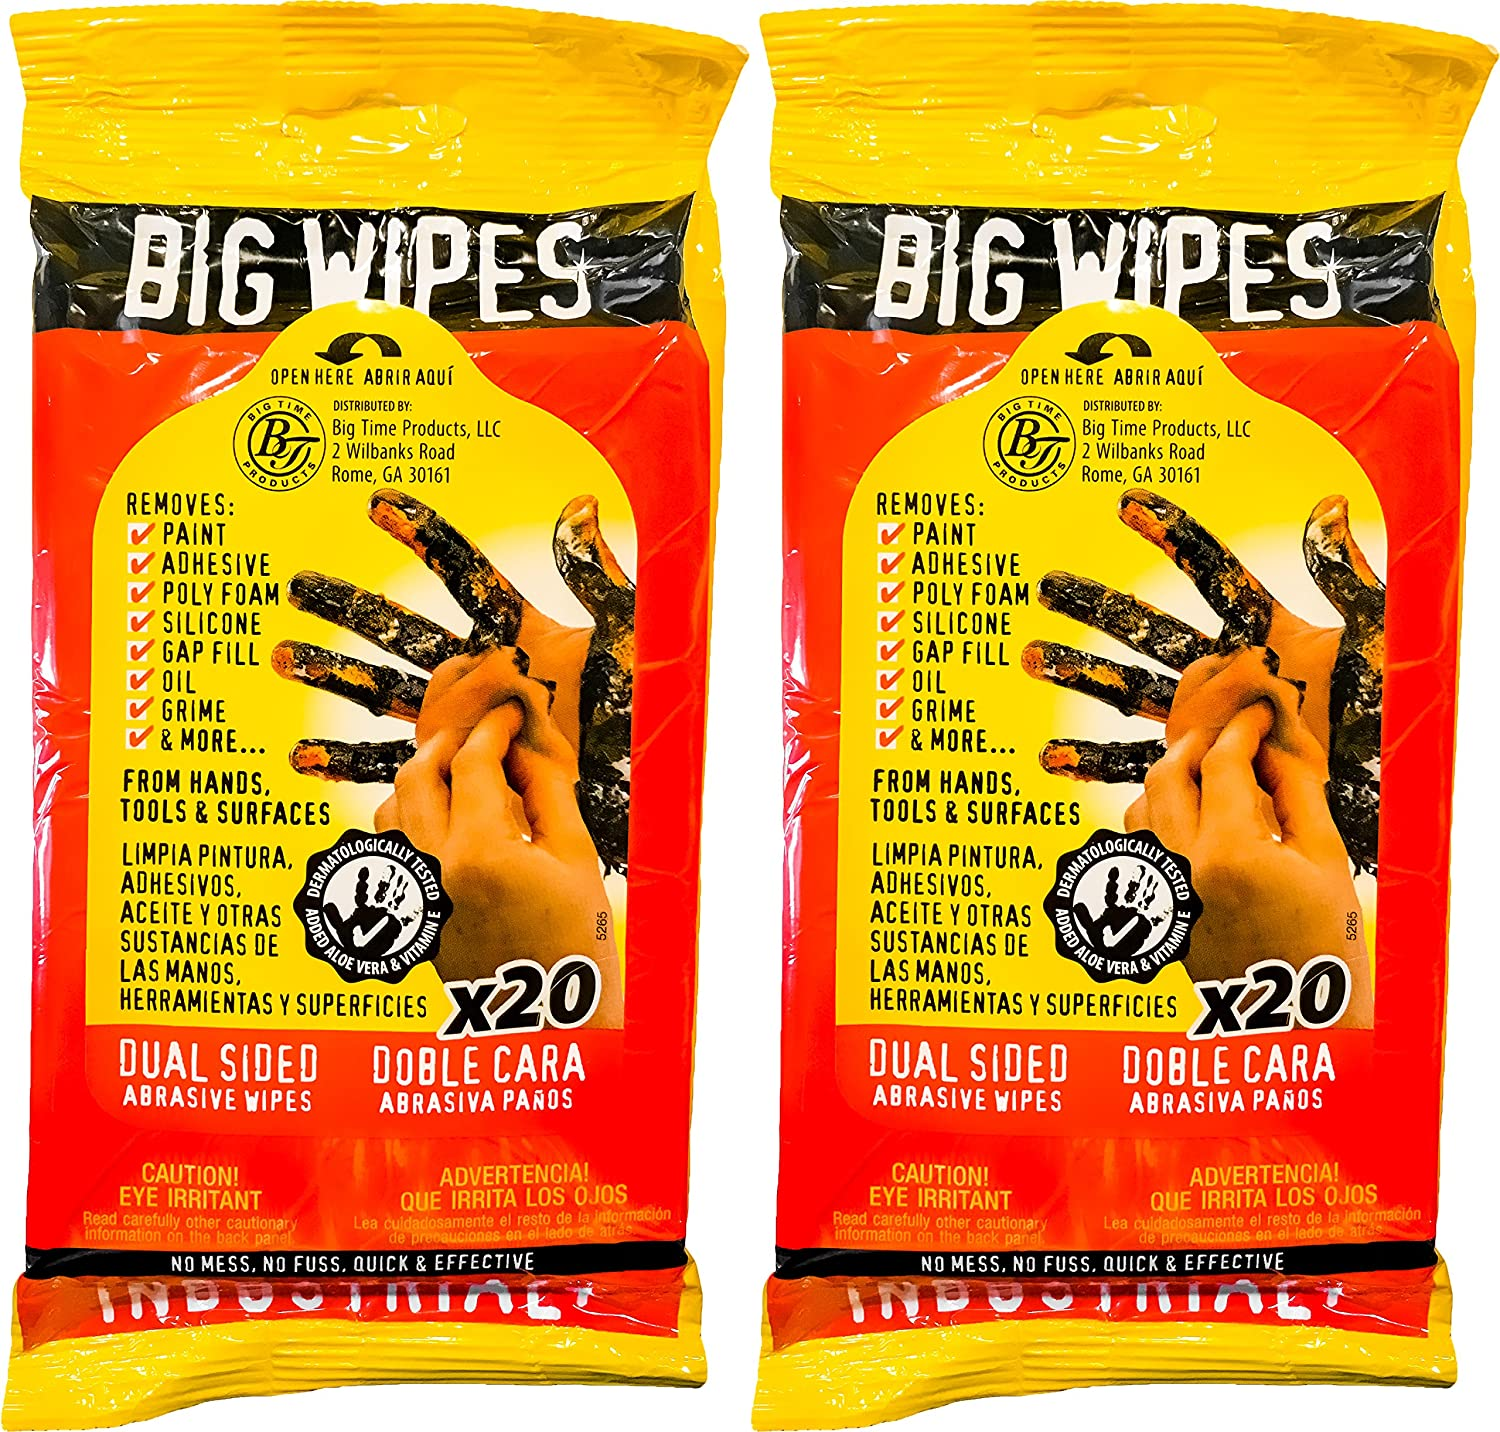 Big Wipes Heavy Duty Industrial Textured Scrubbing Wipes, 40 Count (2 Travel Packs) Sycamore